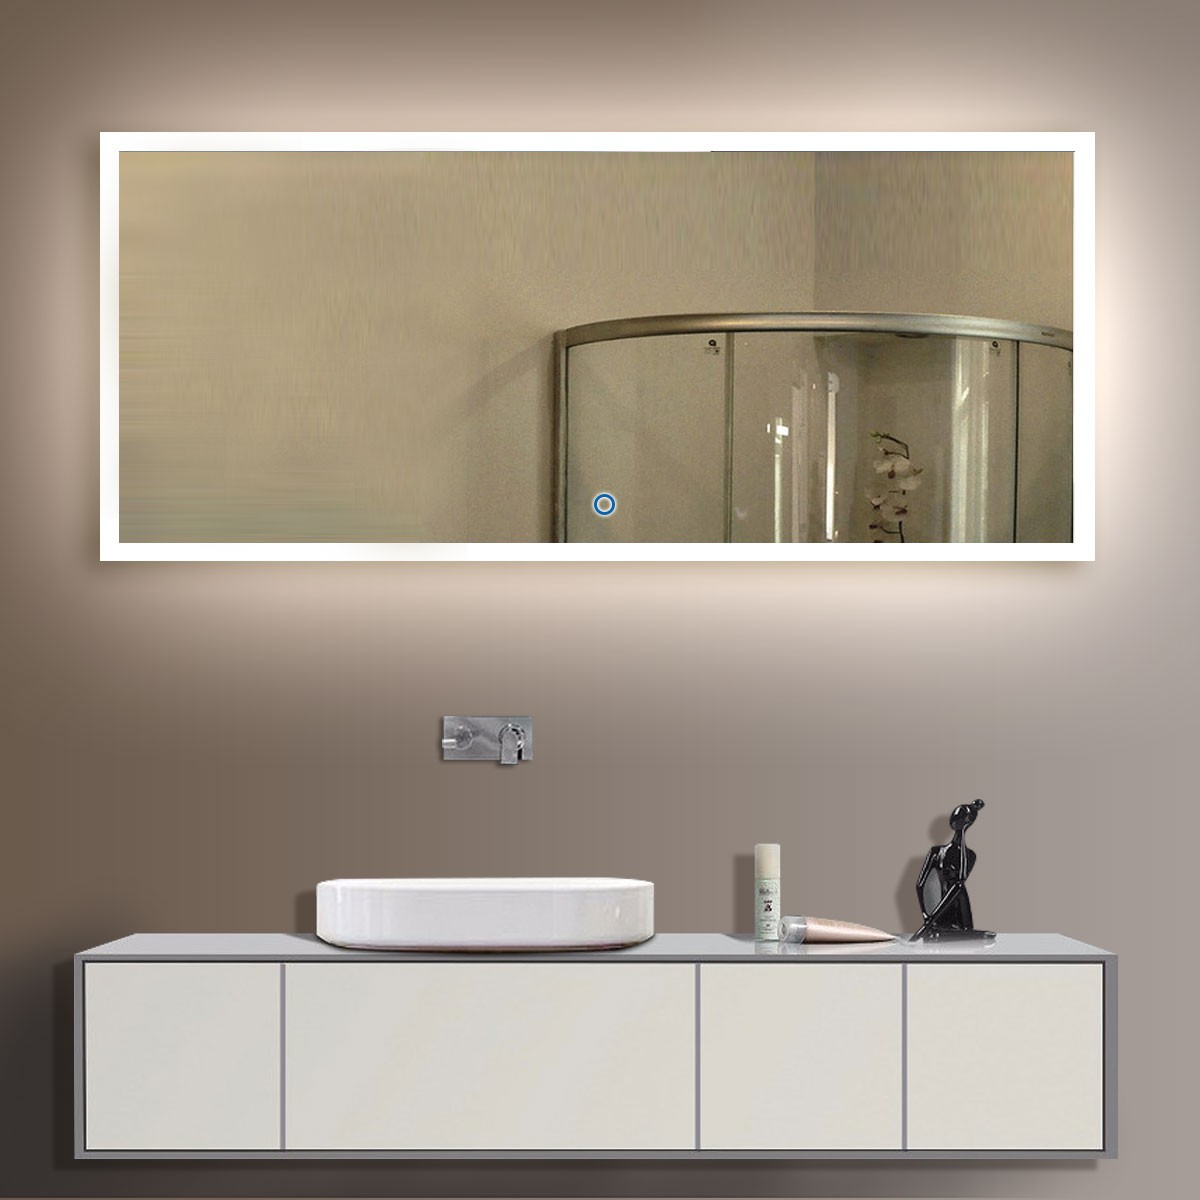 Bathroom Mirror Backlit buy bathroom led lighted mirrors, backlit mirrors | decoraport usa